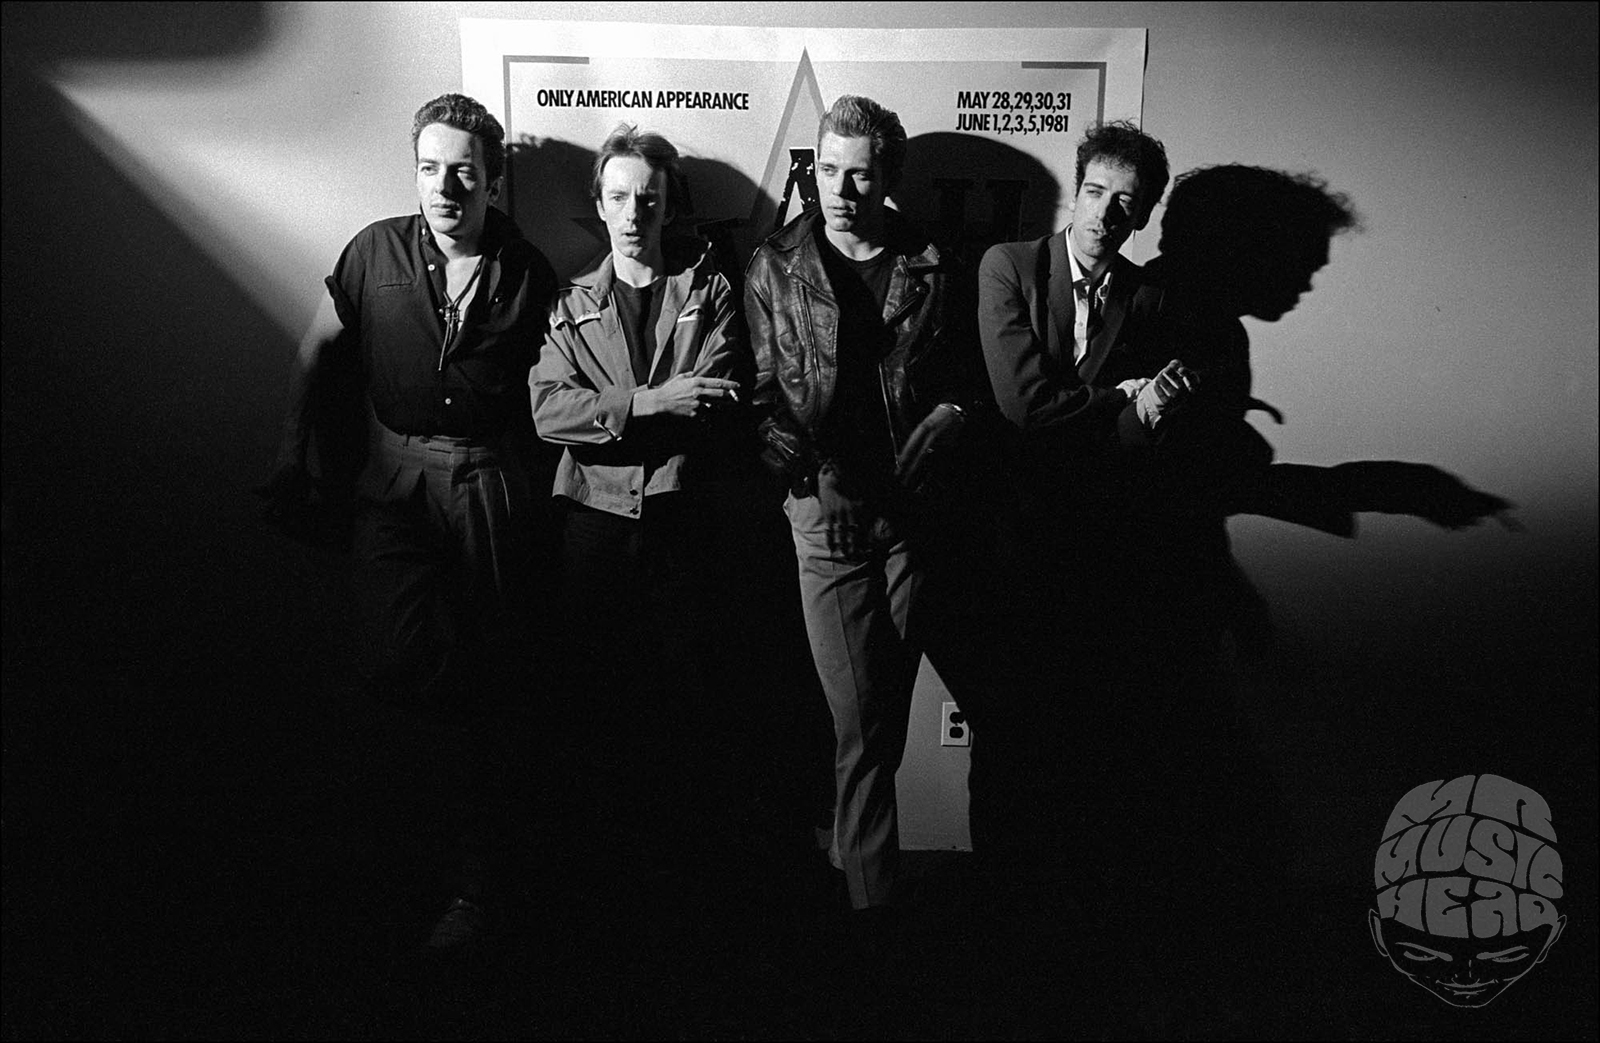 allan tannenbaum_The Clash_Presser_Pose_1981.jpg